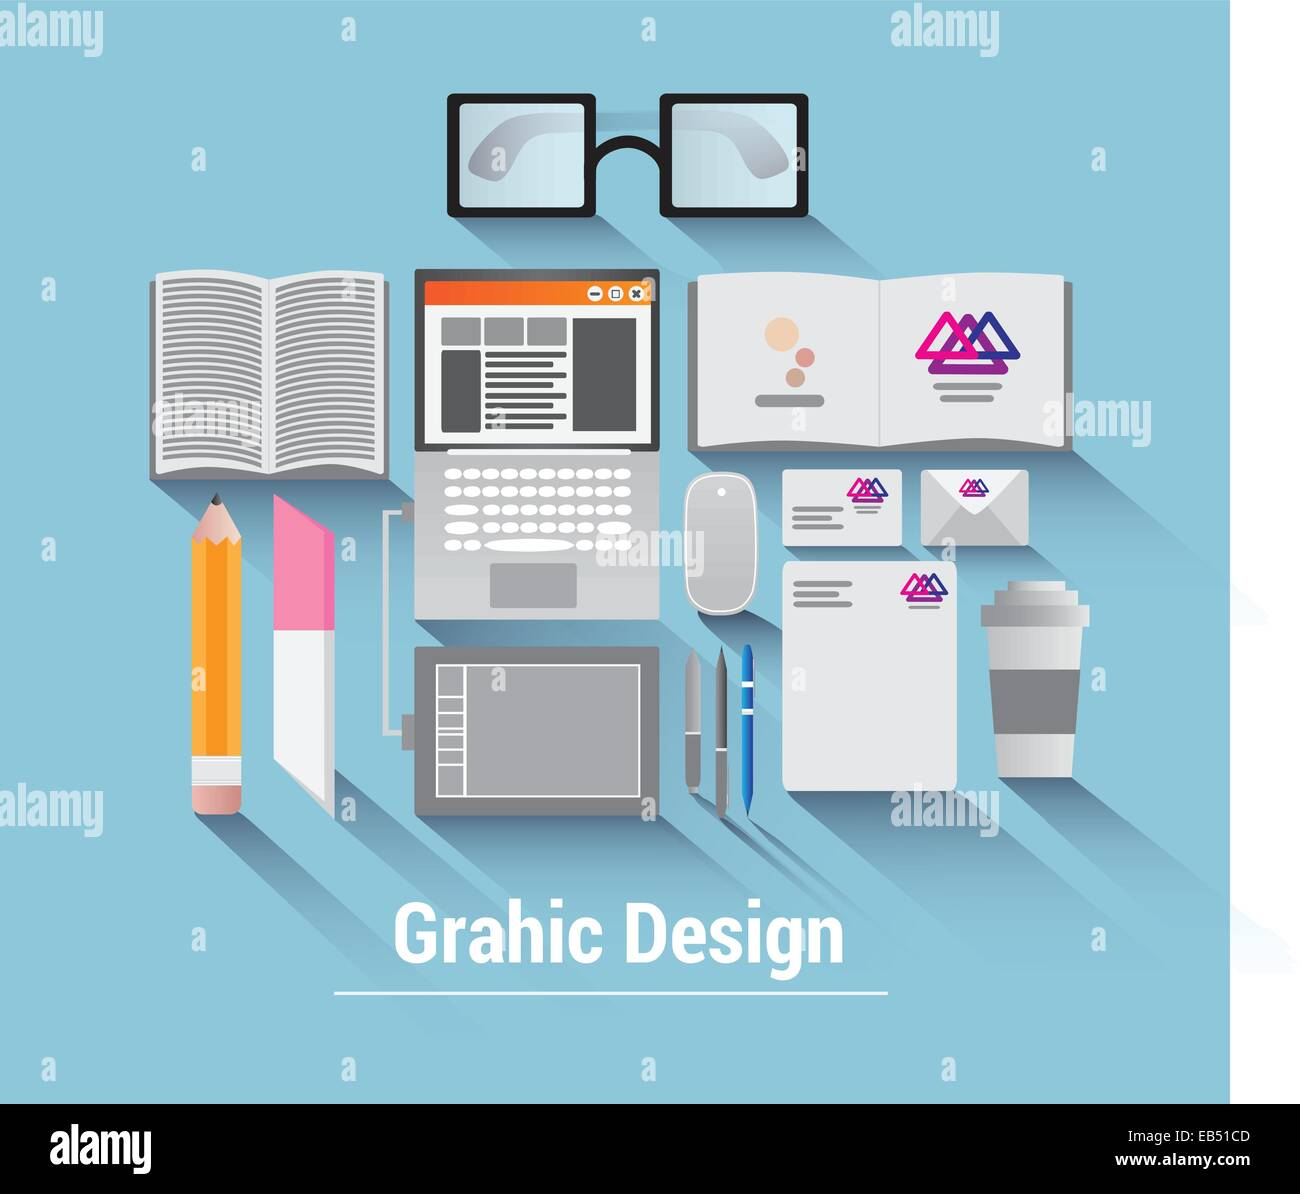 Graphic design vector Immagini Stock